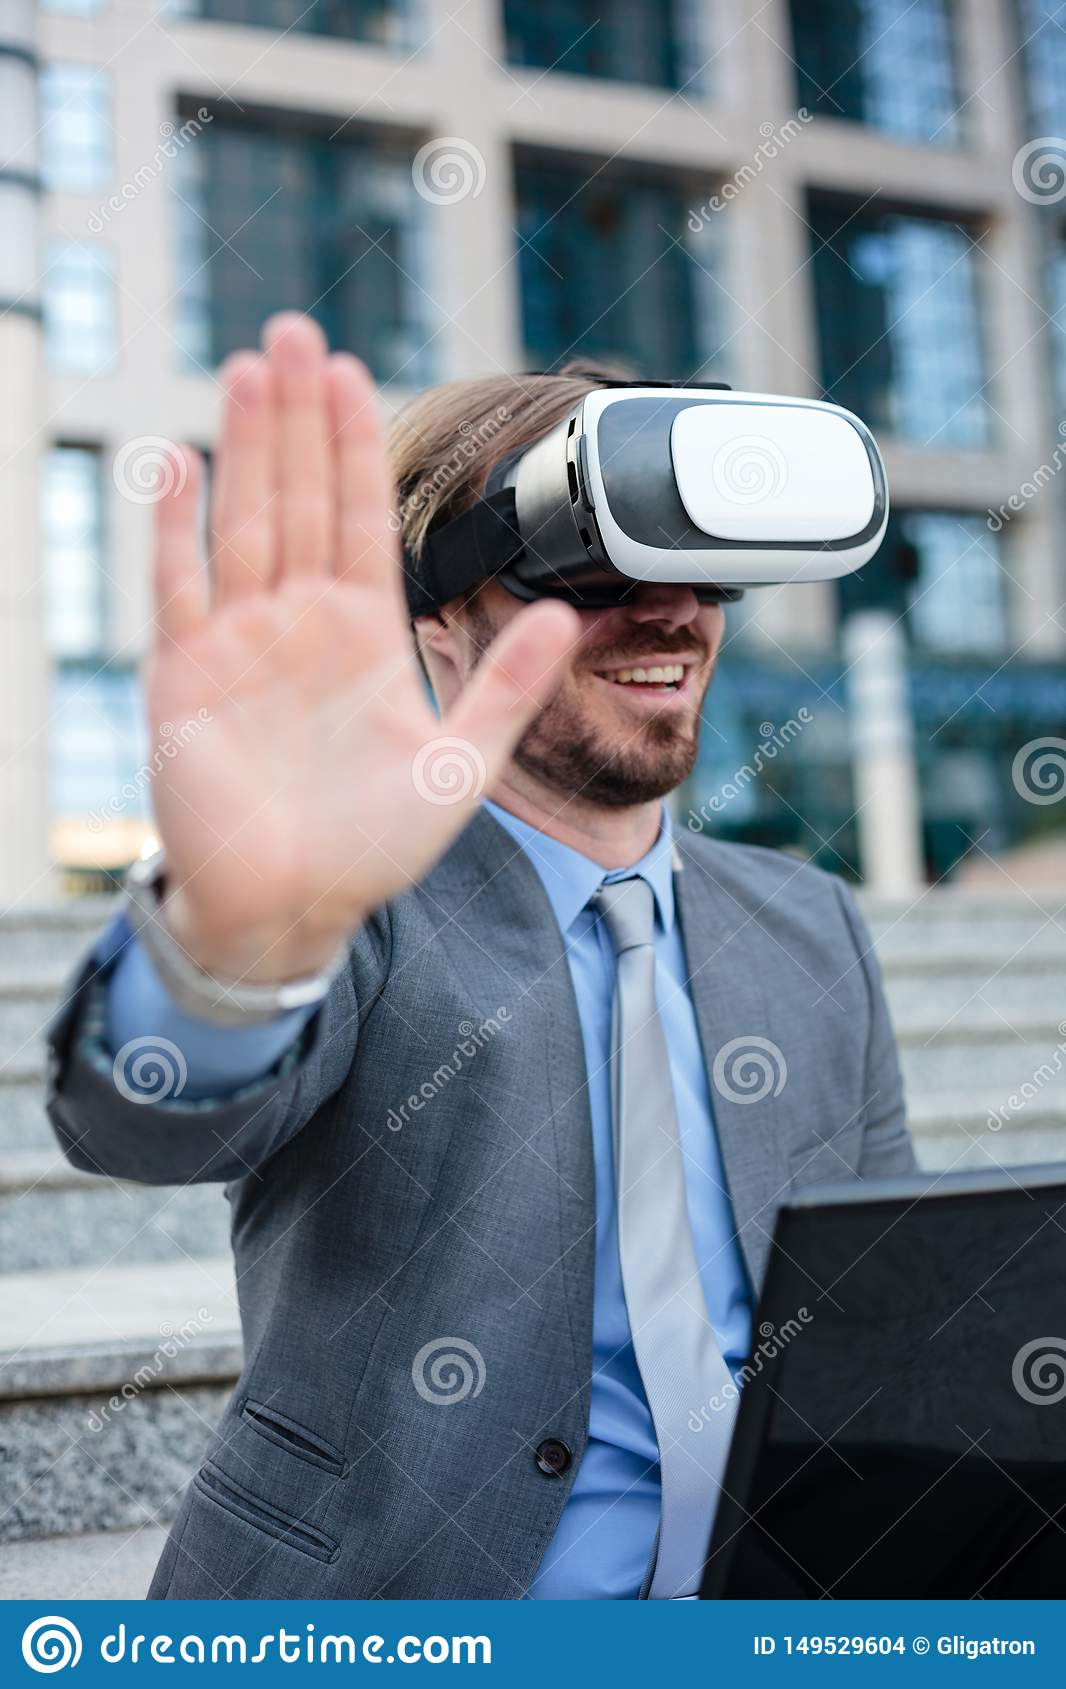 Close up of a young businessman using VR goggles in front of an office building. Selective focus concept, focus on head